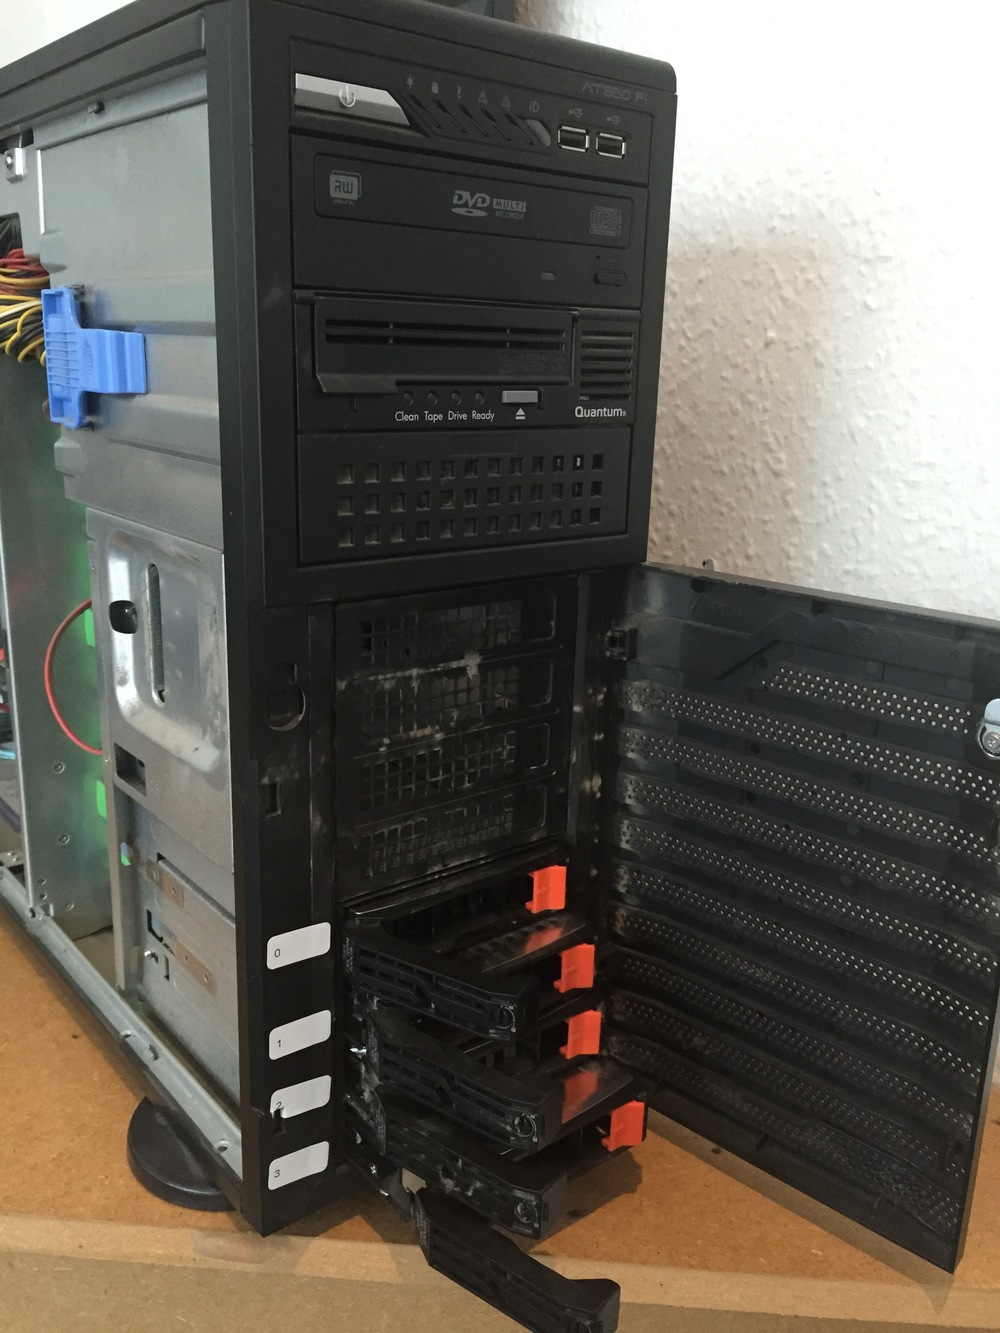 Pulling SAS drives out a server